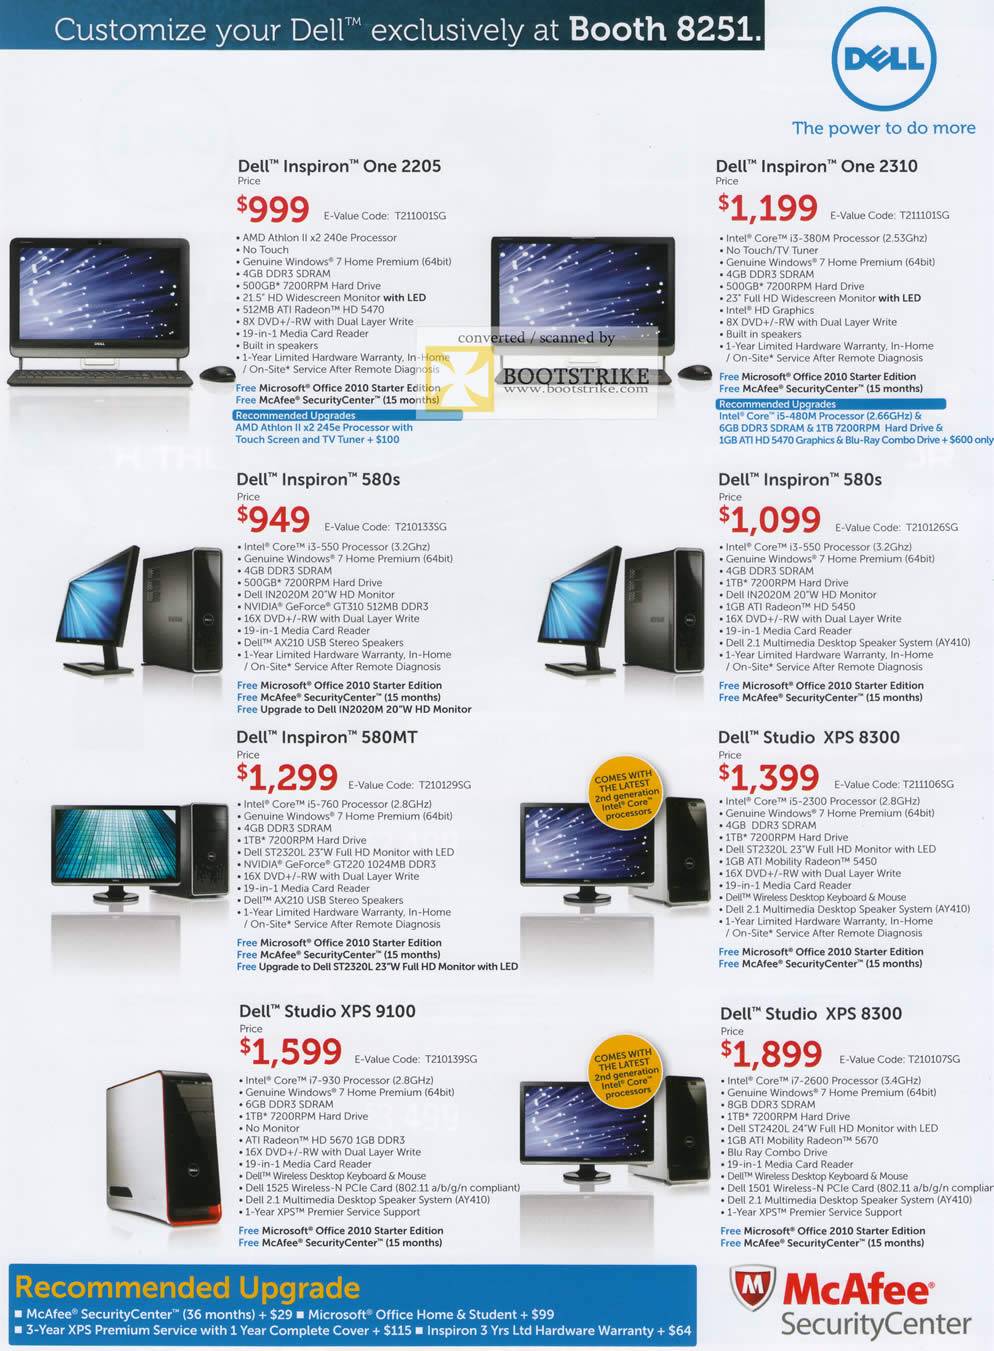 IT Show 2011 price list image brochure of Dell Desktop PC Inspiron One 2205 2310 580s 580MT Studio XPS 8300 XPS 9100 XPS 8300